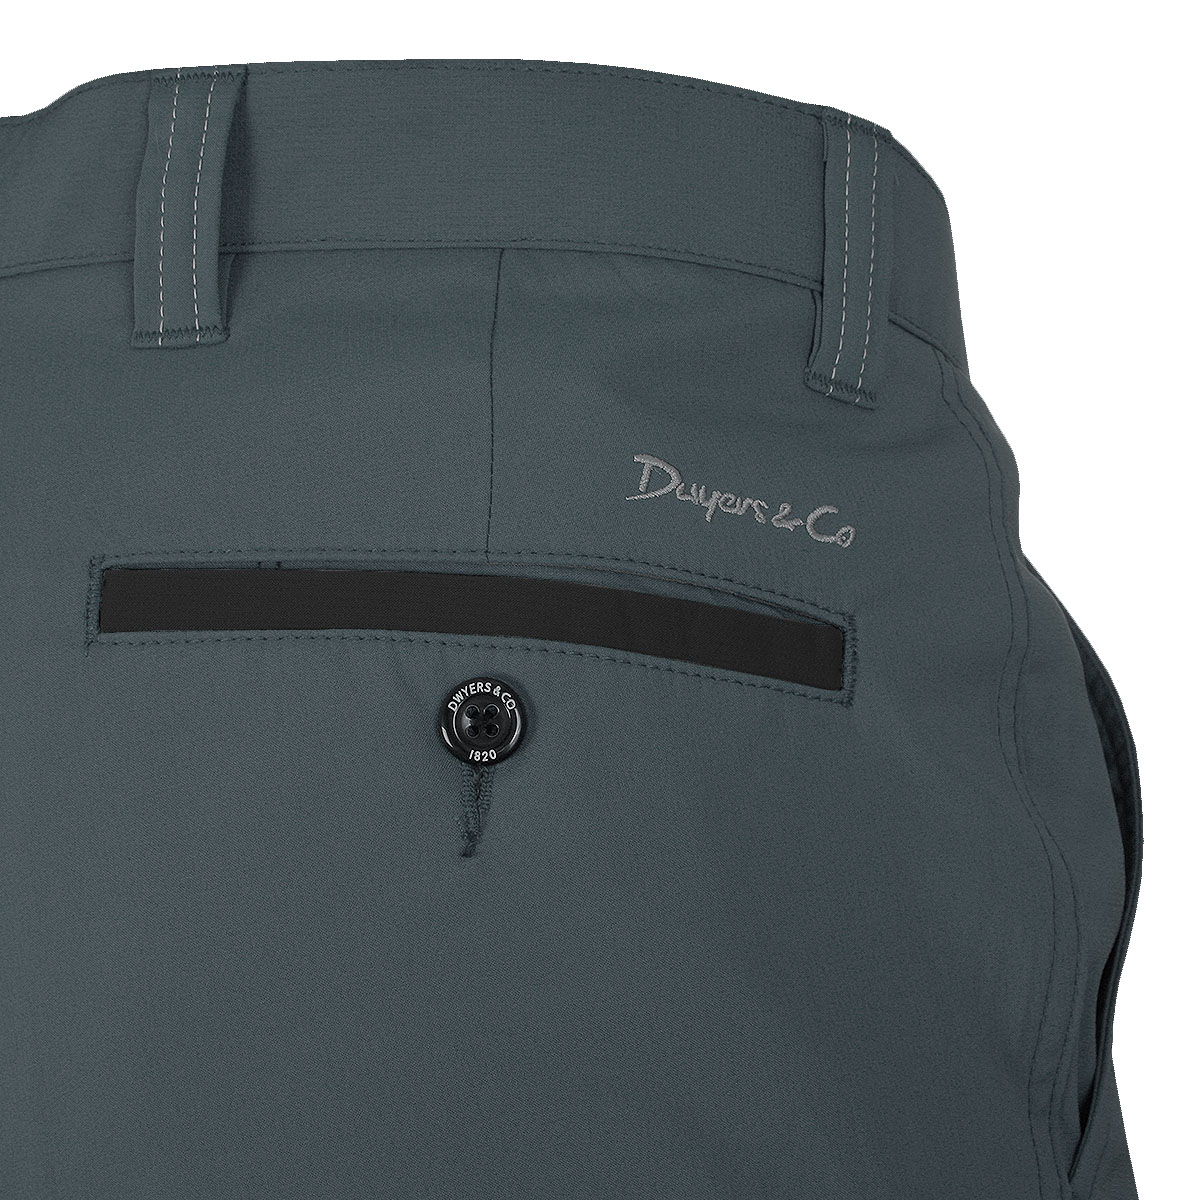 Dwyers-amp-Co-Mens-Matchplay-Stretch-Lightweight-Golf-Trousers-38-OFF-RRP thumbnail 20